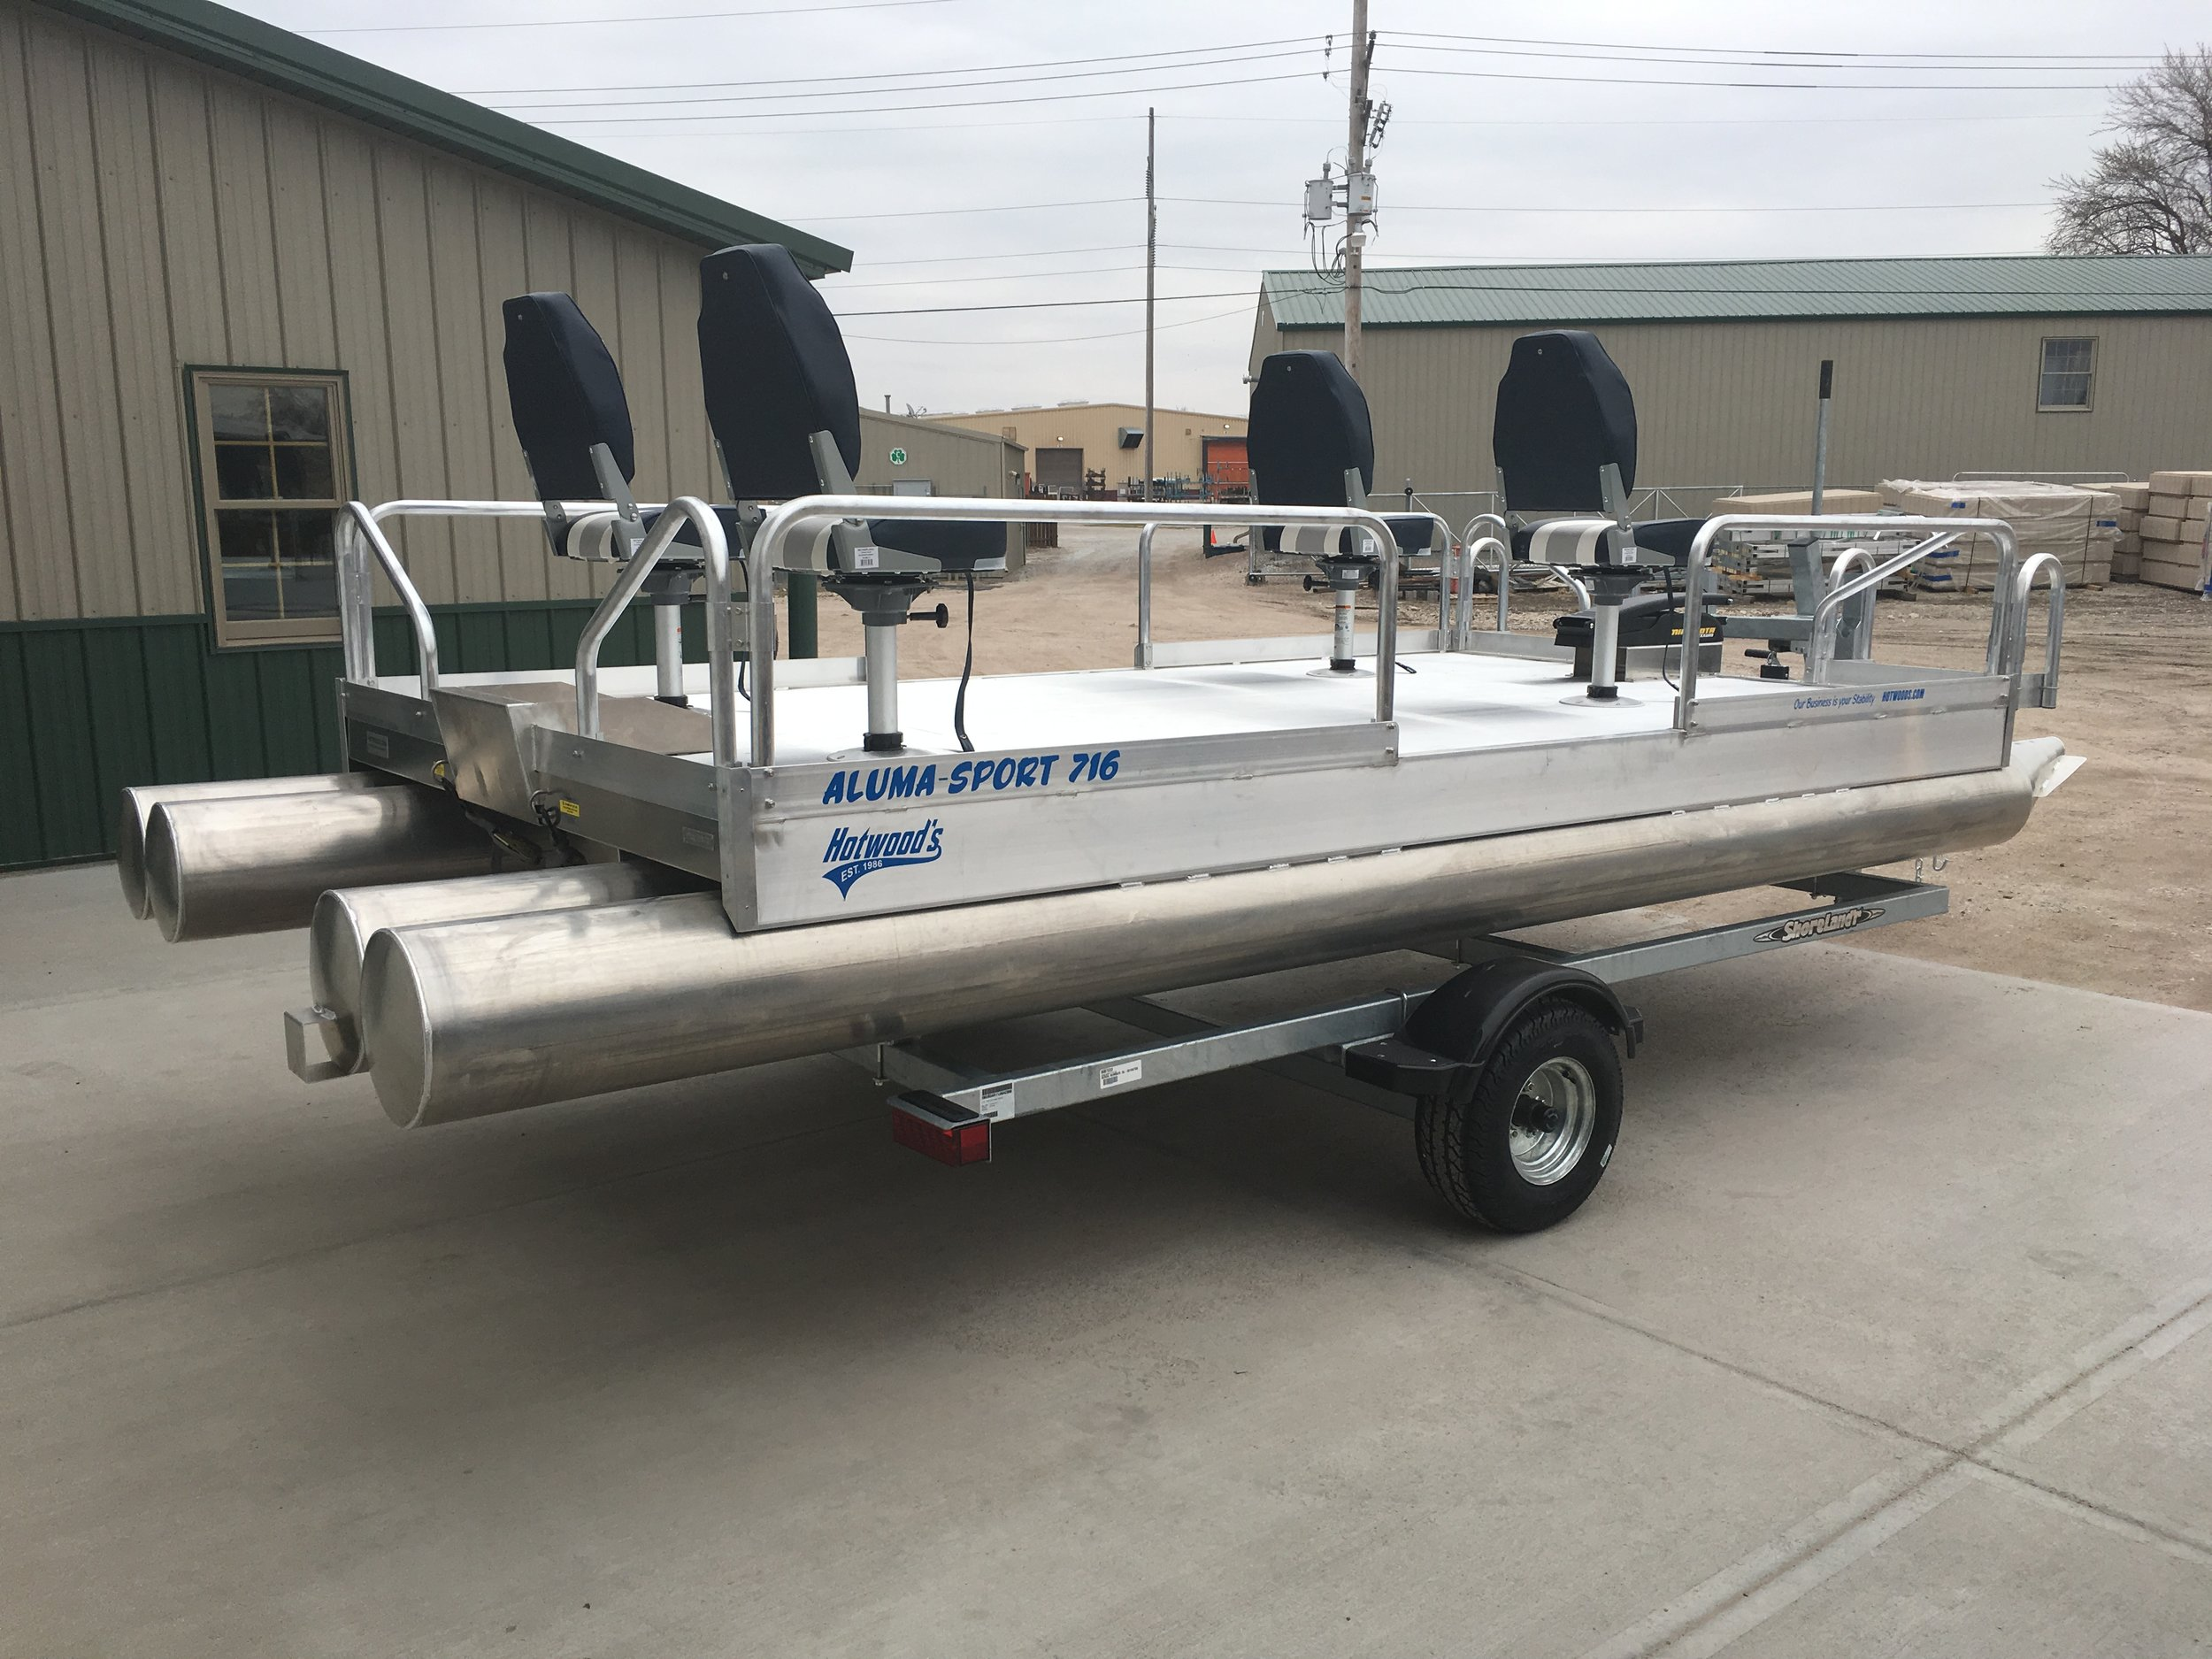 716 shown with 4 pedestal seats awaiting its new owner at our Grand Island Nebraska facility.